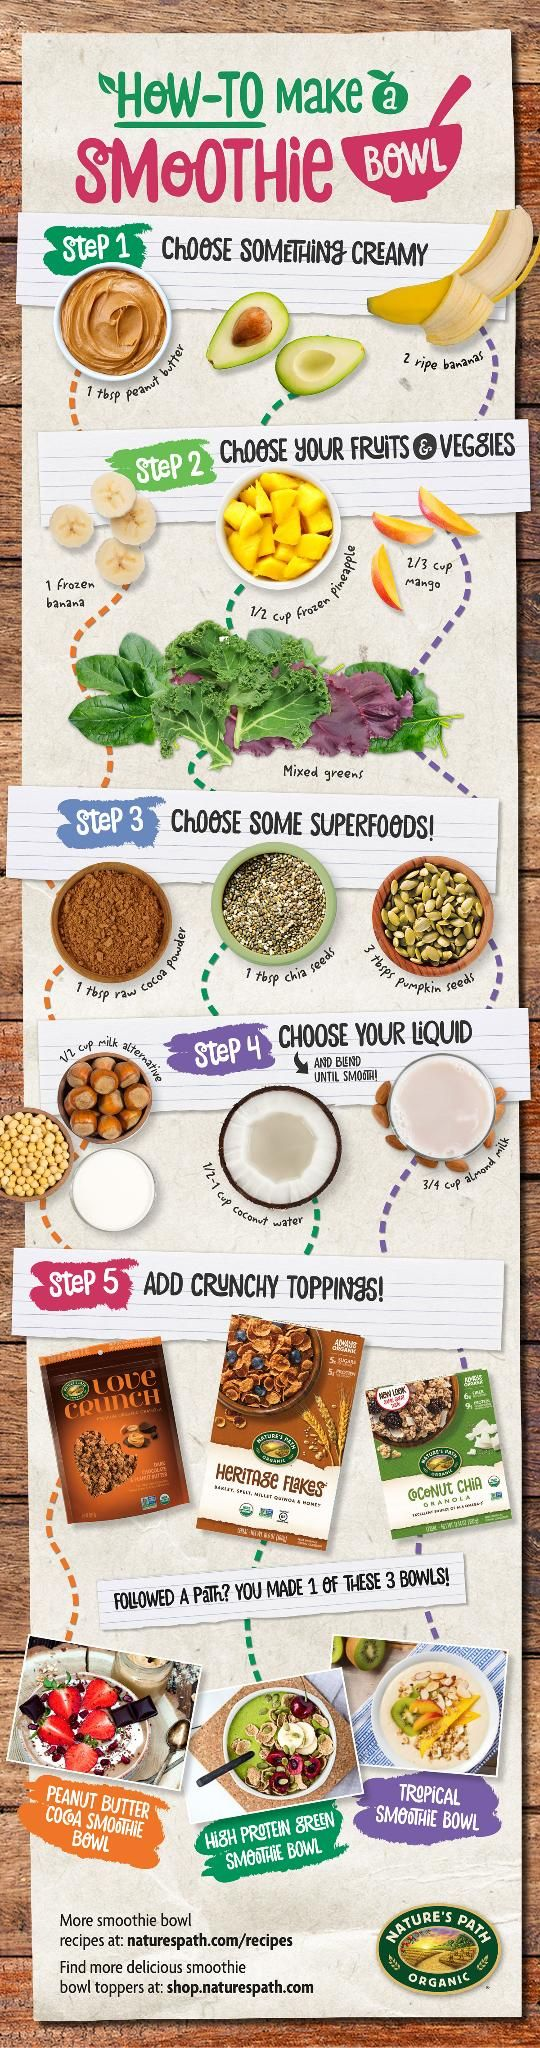 A perfect smoothie bowl comes down to balance. Balance in flavor, ingredients and nutrition. Use this handy chart to make one of the three recipes or your own delicious (and instaworthy) creation!